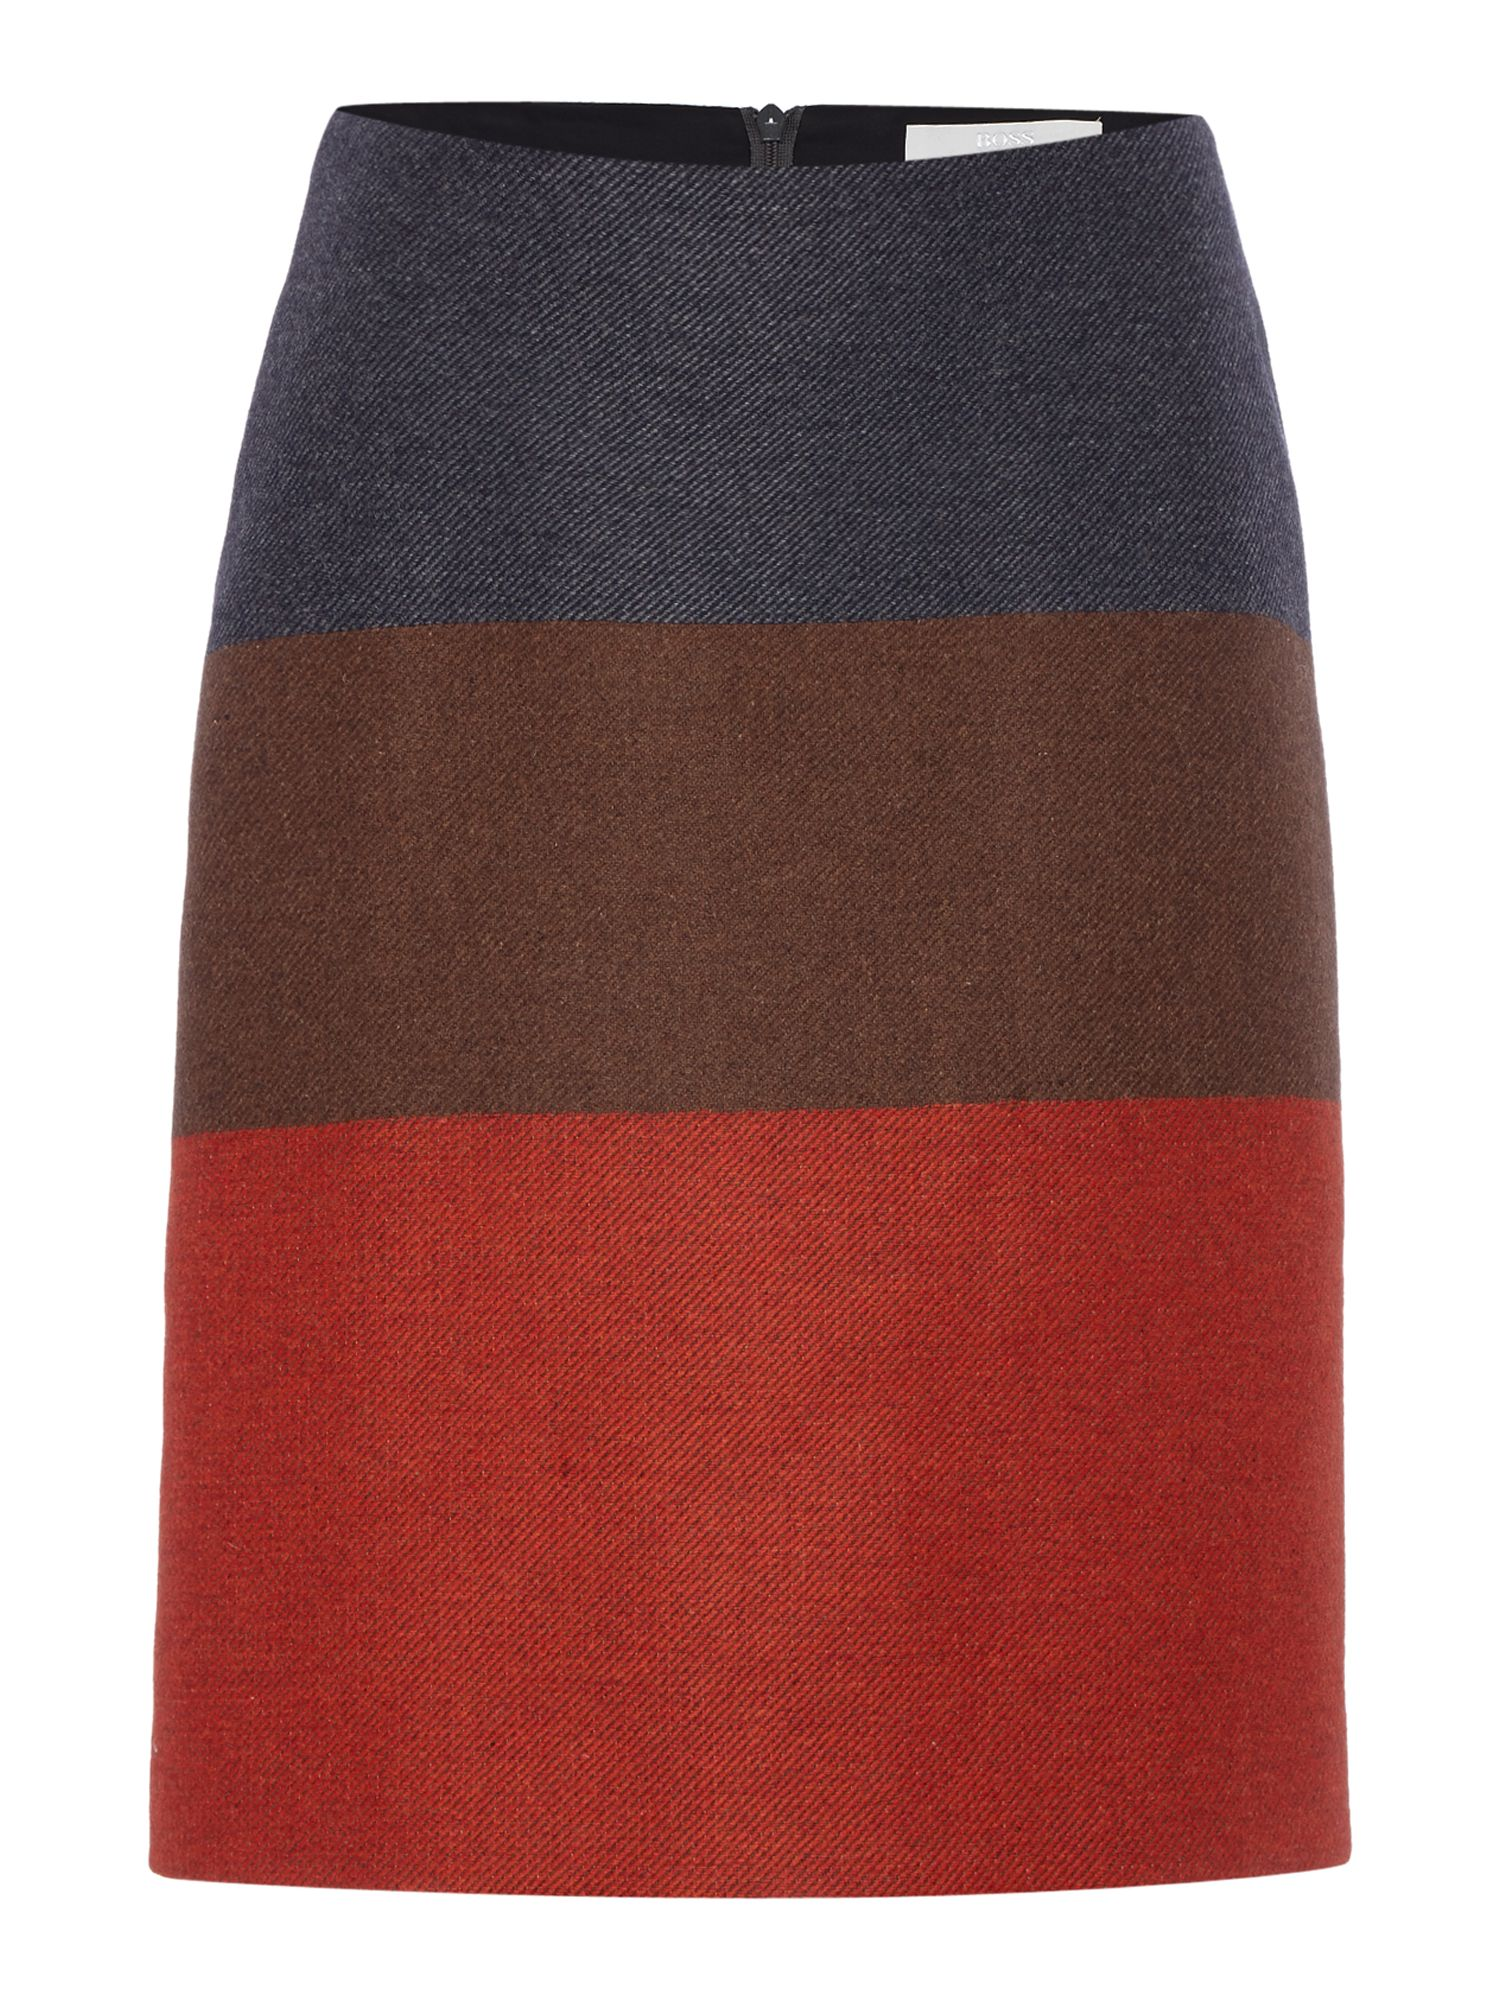 Hugo Boss Malivi Colour Block Bold Stripes Skirt Multi-Coloured £159.00 AT vintagedancer.com